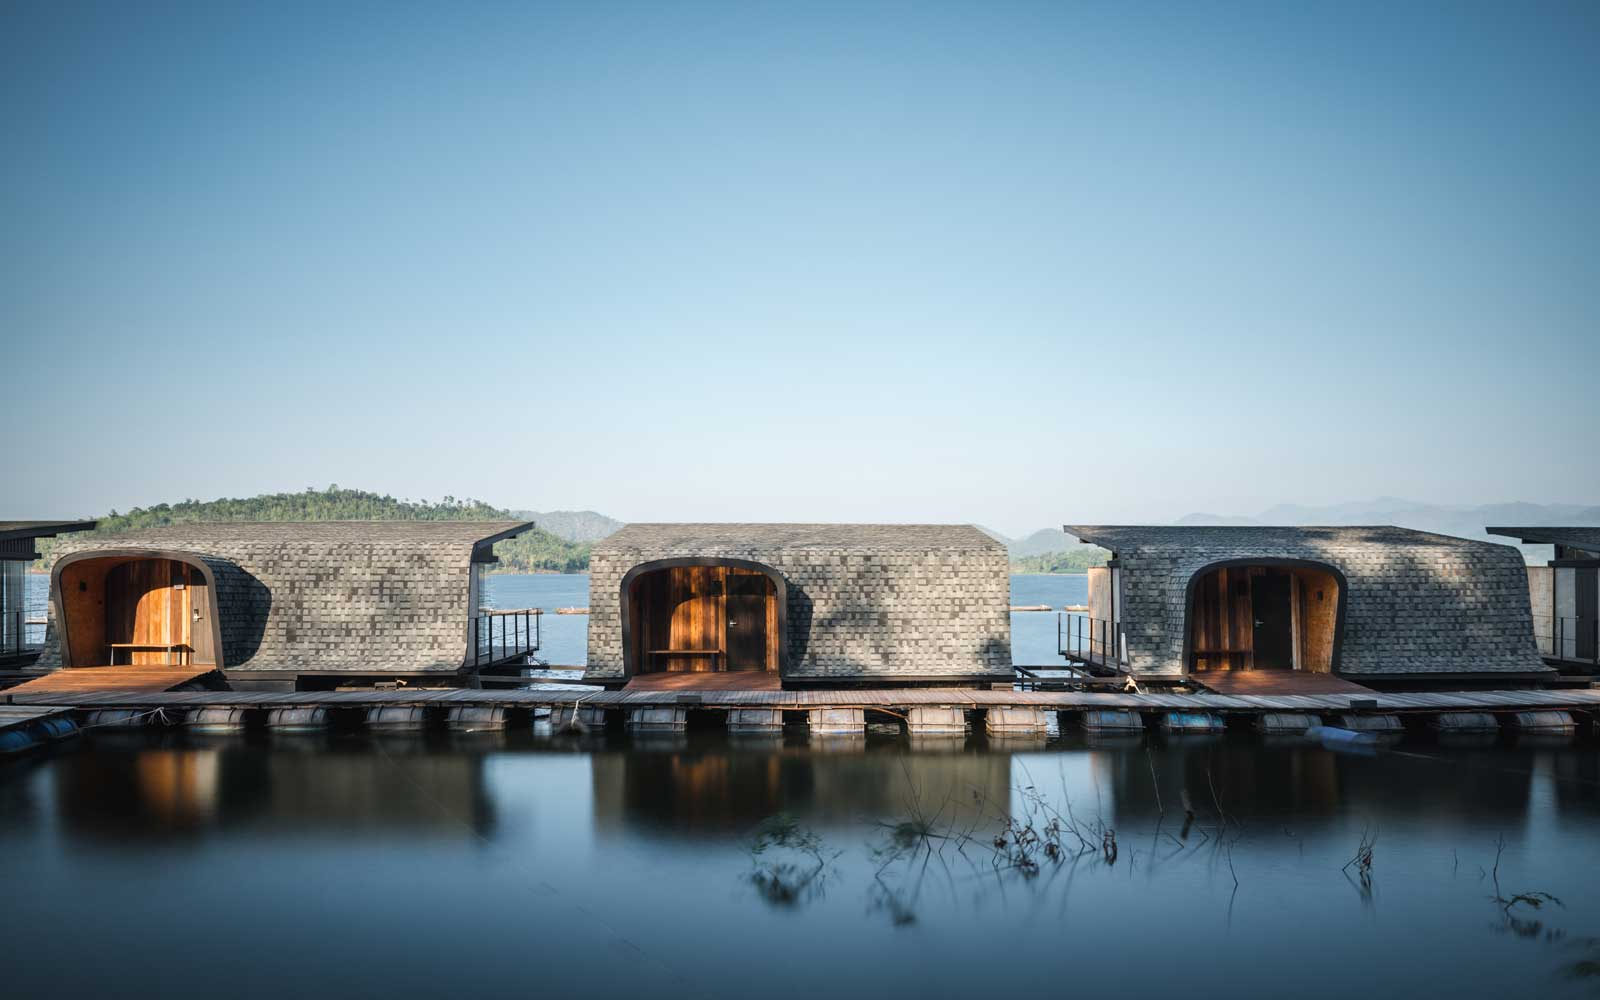 Sleep on a Gorgeous Lake in Thailand at This Luxury Hotel Built on Rafts